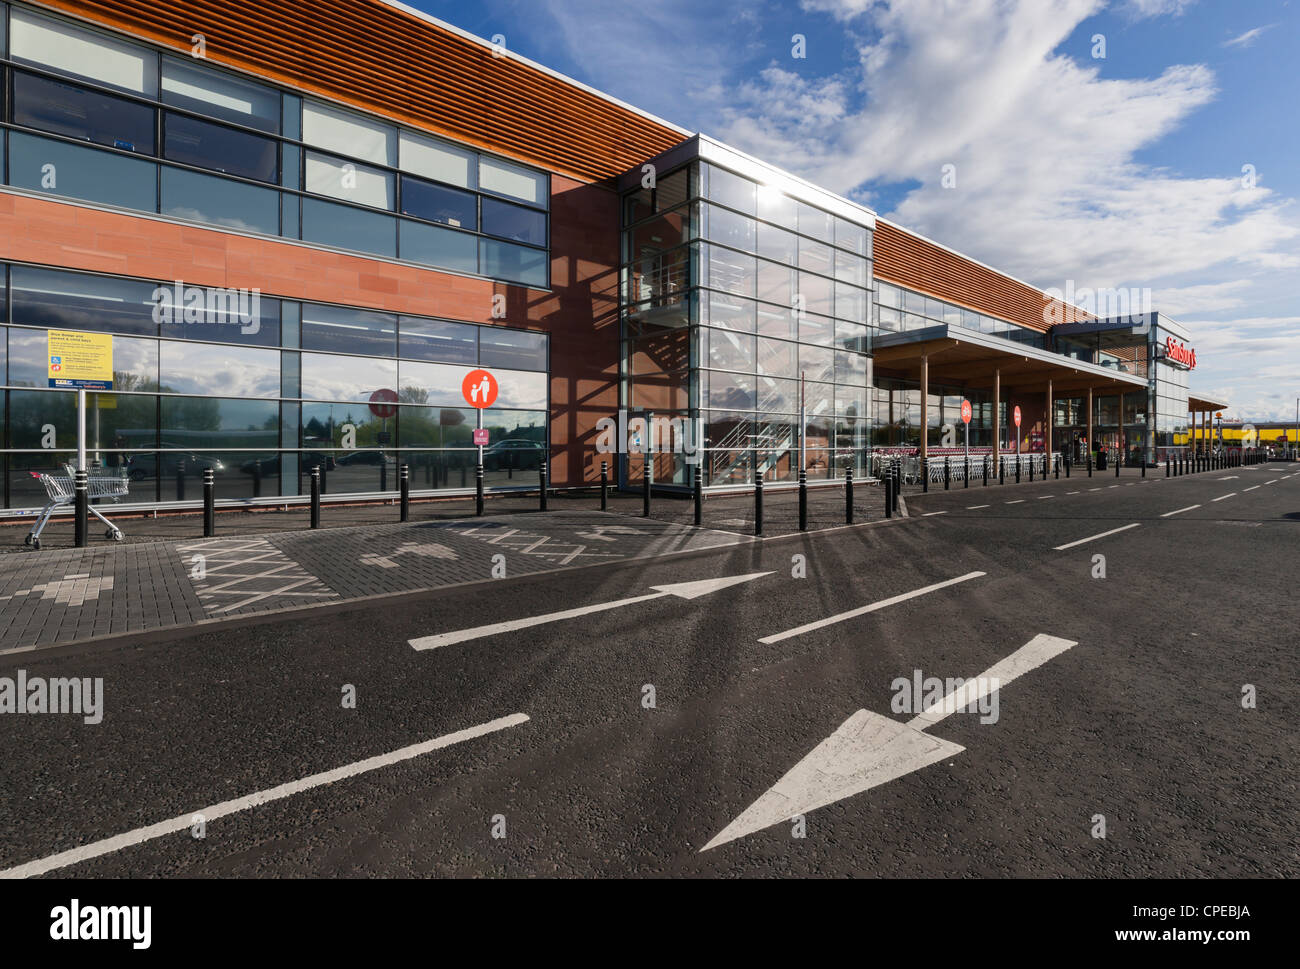 Sainsburys supermarket, UK - store in Kelso, Scotland. Car park roadway direction sign. - Stock Image